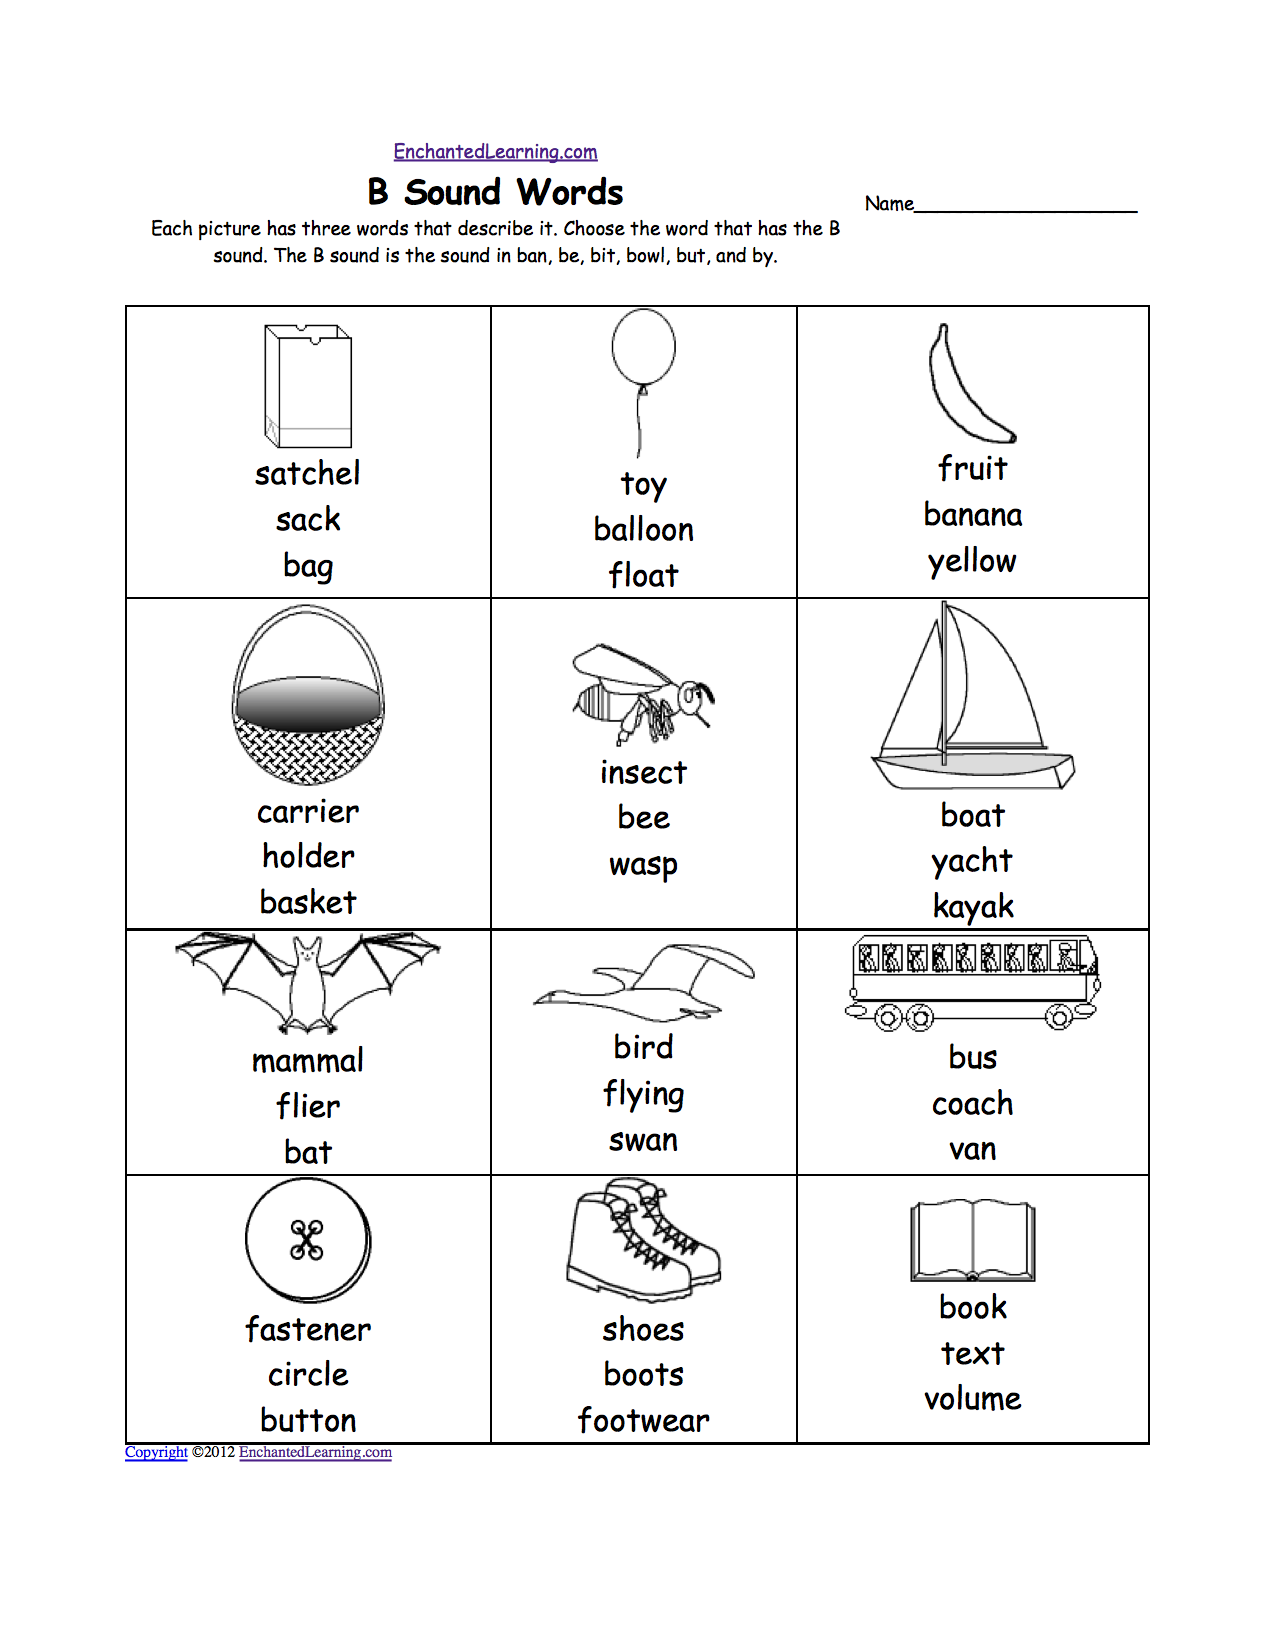 Aldiablosus  Sweet Phonics Worksheets Multiple Choice Worksheets To Print  With Fascinating Quotbquot Sound Phonics Worksheet Multiple Choice Each Picture Has Three Words That Describe It Choose The Word That Has A Quotbquot Sound The Quotbquot Sound Is The Sound  With Charming Lewis Dot Worksheet Also Transitive And Intransitive Verbs Worksheets Grade  In Addition Combining Like Terms Worksheet Th Grade And Adding Fractions Printable Worksheets As Well As Subtraction Worksheets St Grade Additionally Worksheet For Scientific Method From Enchantedlearningcom With Aldiablosus  Fascinating Phonics Worksheets Multiple Choice Worksheets To Print  With Charming Quotbquot Sound Phonics Worksheet Multiple Choice Each Picture Has Three Words That Describe It Choose The Word That Has A Quotbquot Sound The Quotbquot Sound Is The Sound  And Sweet Lewis Dot Worksheet Also Transitive And Intransitive Verbs Worksheets Grade  In Addition Combining Like Terms Worksheet Th Grade From Enchantedlearningcom